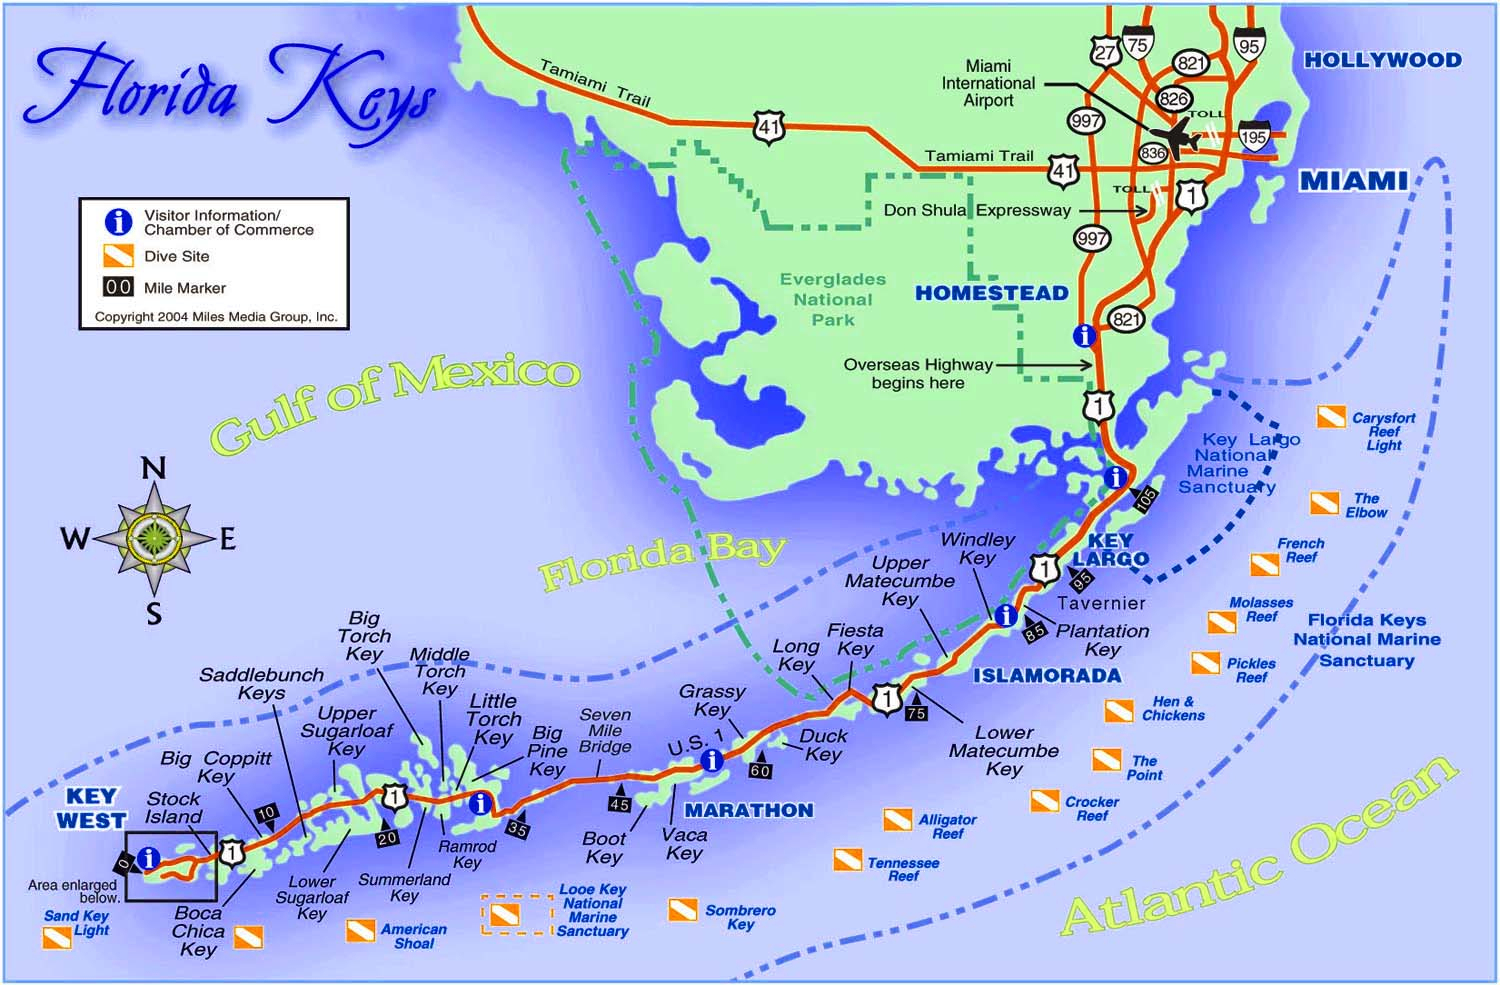 Best Florida Keys Beaches Map And Information - Florida Keys - Florida Keys Dive Map